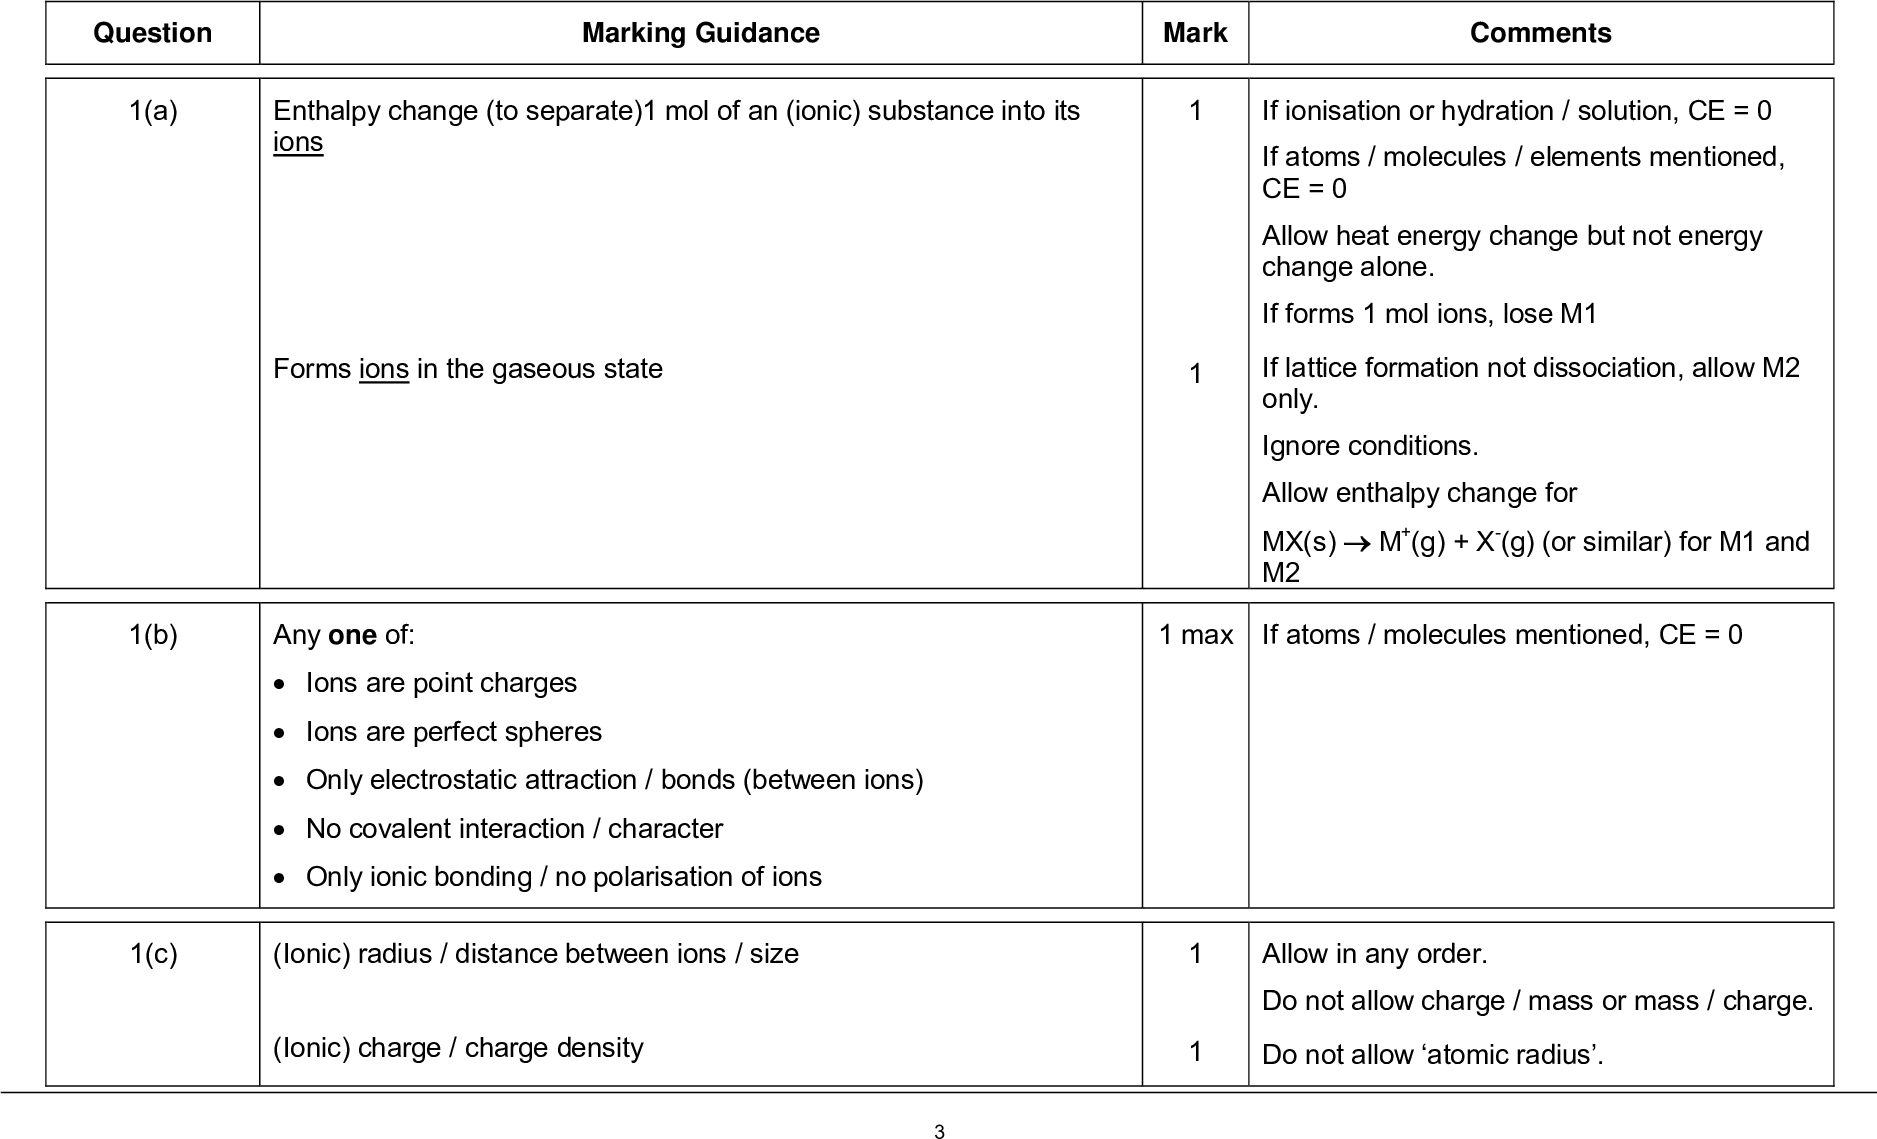 mark scheme general certificate of education a level chemistry unit energetics redox and inorganic chemistry june marking guidance mark comments question a enthalpy change to separate mol of an ionic substance into its ions forms ions in the gaseous state if ionisation or hydration solution ce if atoms molecules elements mentioned ce allow heat energy change but not energy change alone if forms mol ions lose m if lattice formation not dissociation allow m only ignore conditions allow enthalpy change for mx s m g x g or similar for m and m if atoms molecules mentioned ce max allow in any order do not allow charge mass or mass charge do not allow atomic radius b c any one of ions are point charges ions are perfect spheres only electrostatic attraction bonds between ions no covalent interaction character only ionic bonding no polarisation of ions ionic radius distance between ions size ionic charge charge density mark scheme general certificate of education a level chemistry unit energetics redox and inorganic chemistry june d e o hl ha chlorine ha ag i e ag ea cl hf kj mol m greater m born haber cycle method allows for additional covalent interaction or m equal m agcl is perfectly ionic no covalent character or cycle if agcl ce allow for allow for use of ignore units even if incorrect do not penalise agcl allow agcl has covalent character only score m if m is correct